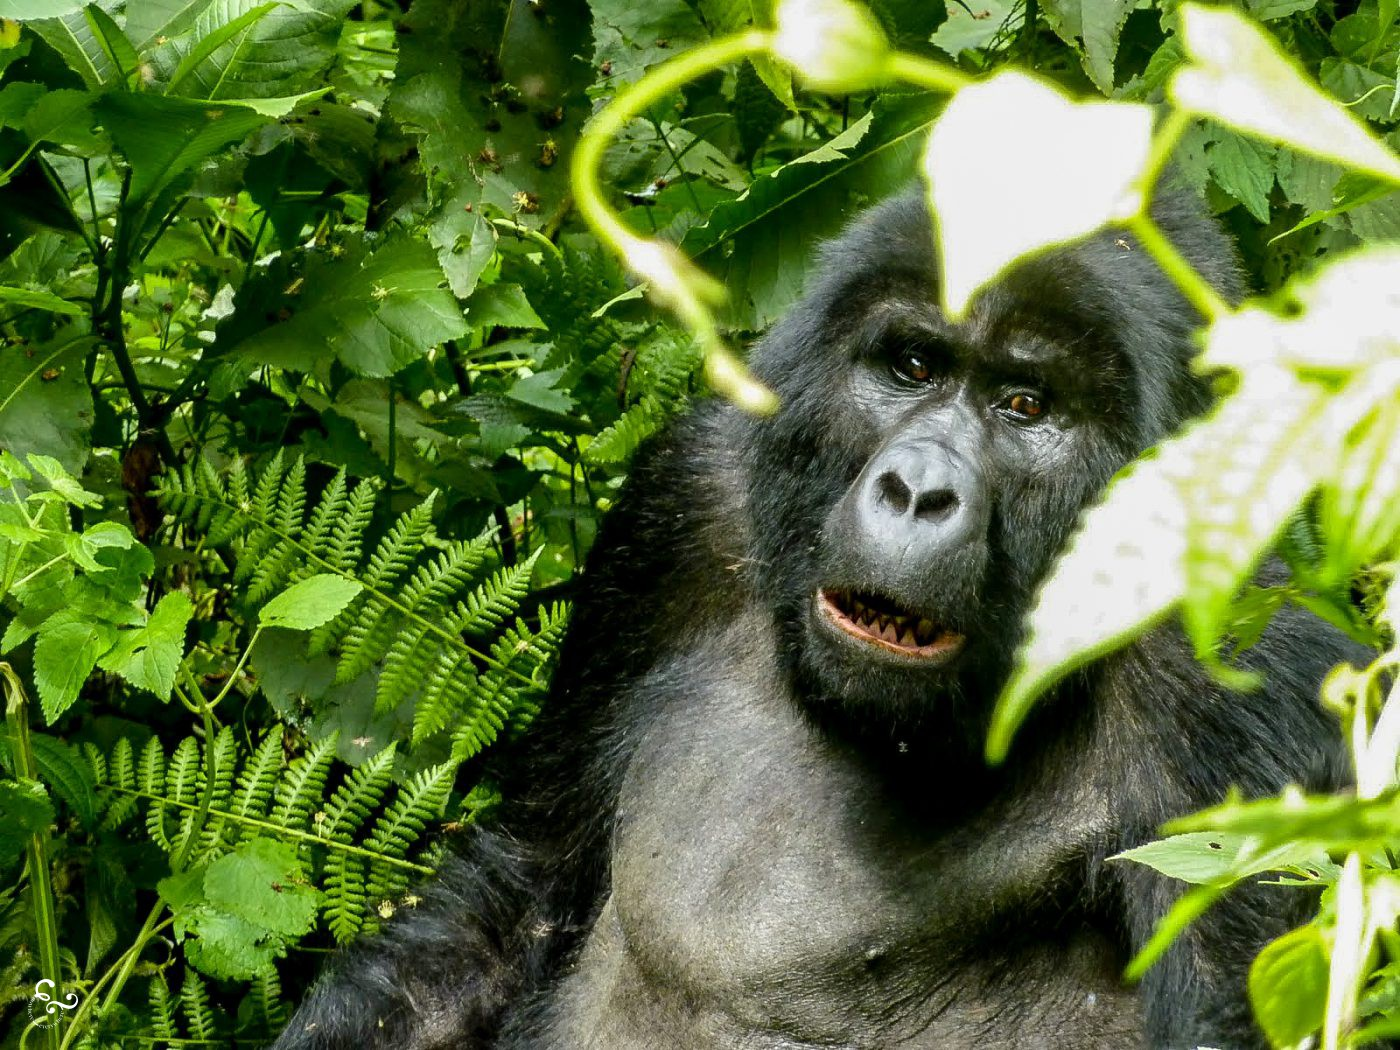 Africa Uganda Rwanda Forest Gorilla Trekking Lis Dingjan Nowhere & Everwhere Environmentalism Sustainable Travel